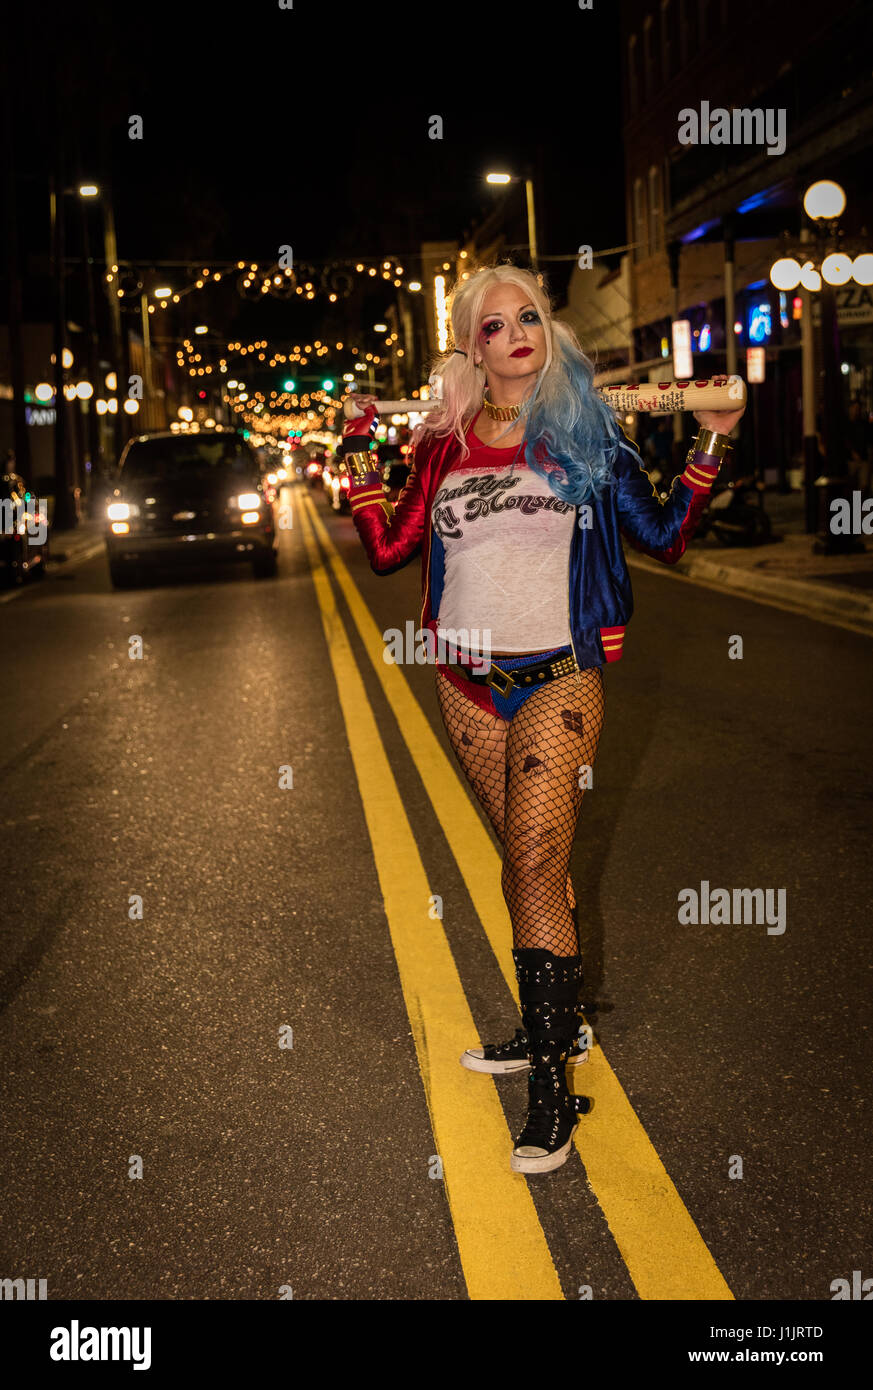 Harley Quinn in the streets of Florida - Stock Image